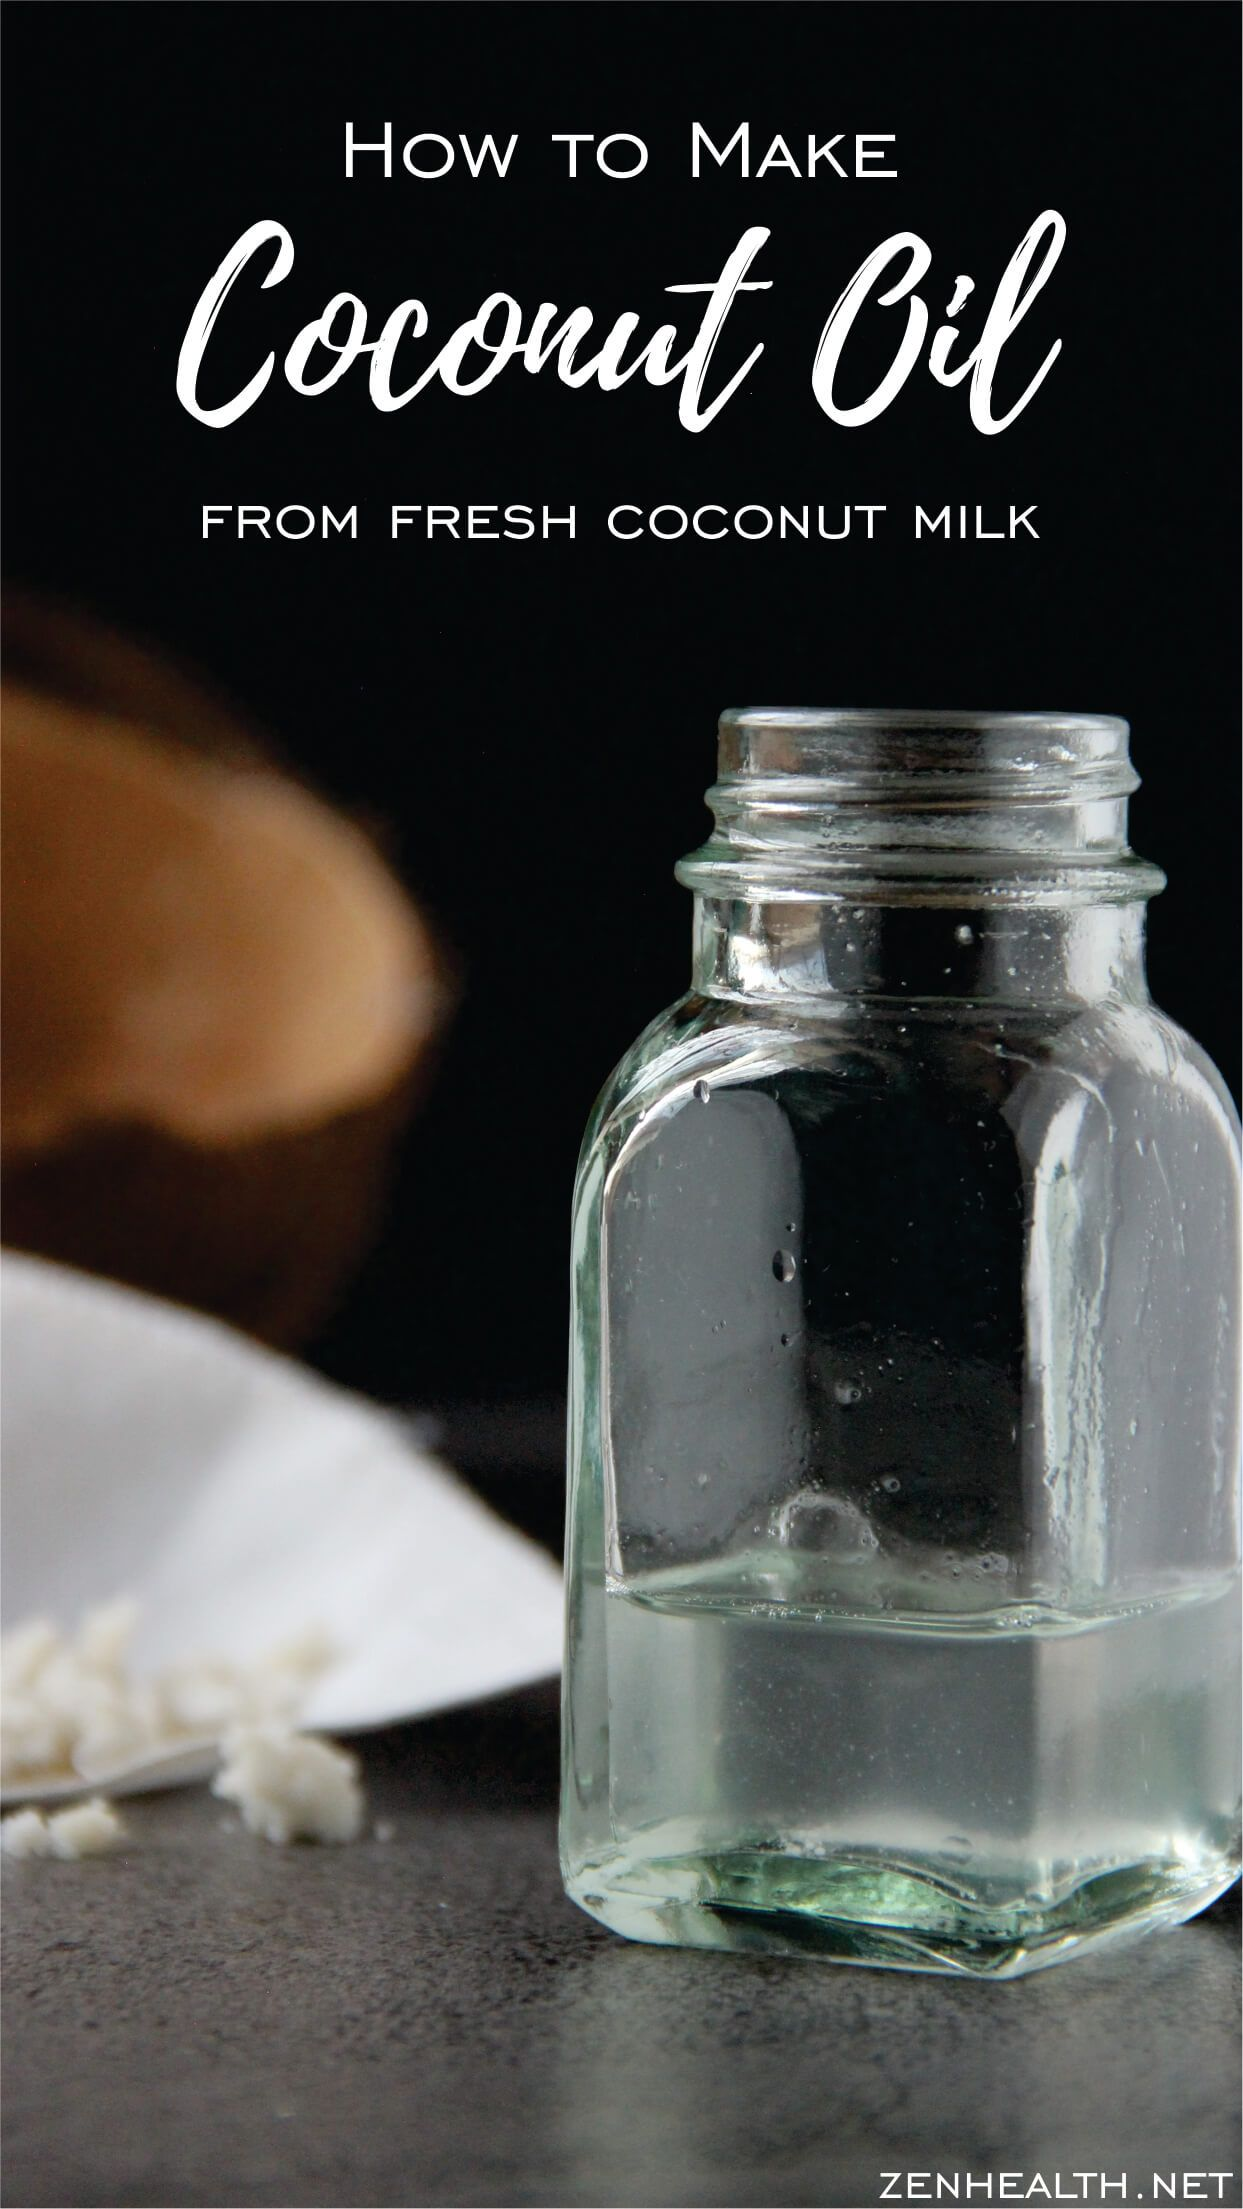 How To Make Coconut Oil From Fresh Coconut Milk Zenhealth In 2020 Coconut Recipes Healthy Make Coconut Milk Best Nutrition Food